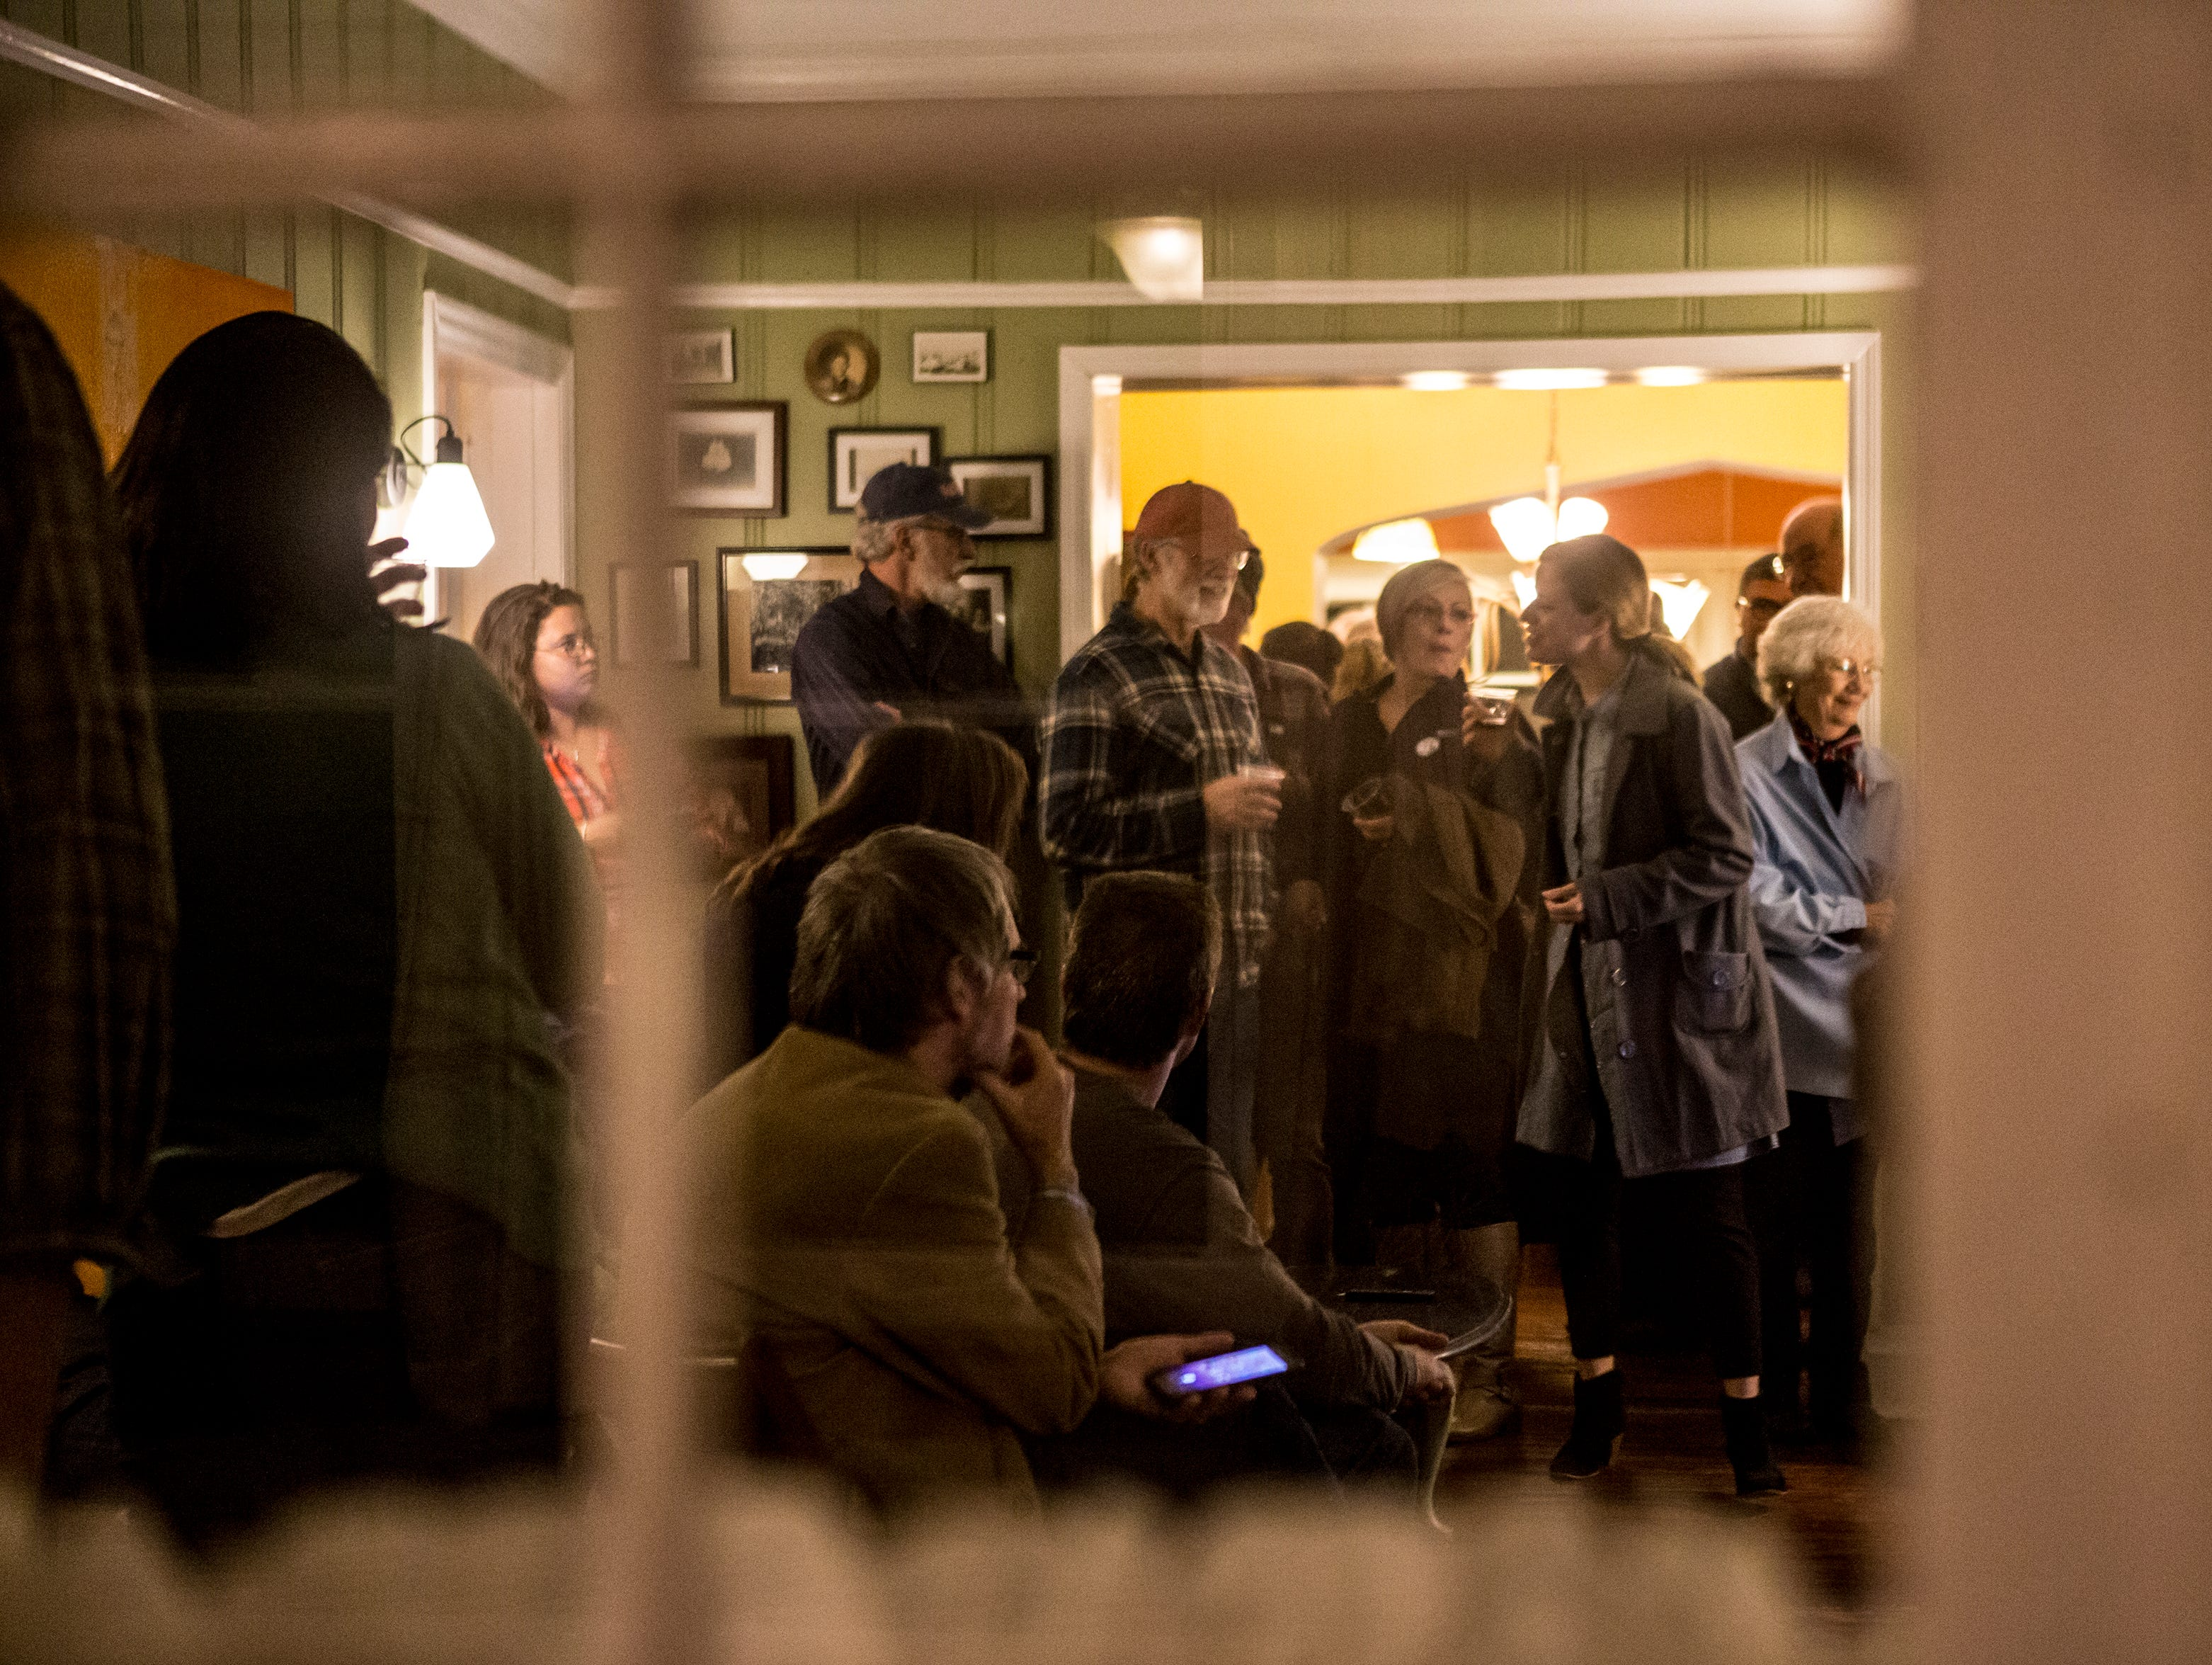 The Democratic Party holds their election night watch party at the Orchard House in Granville.